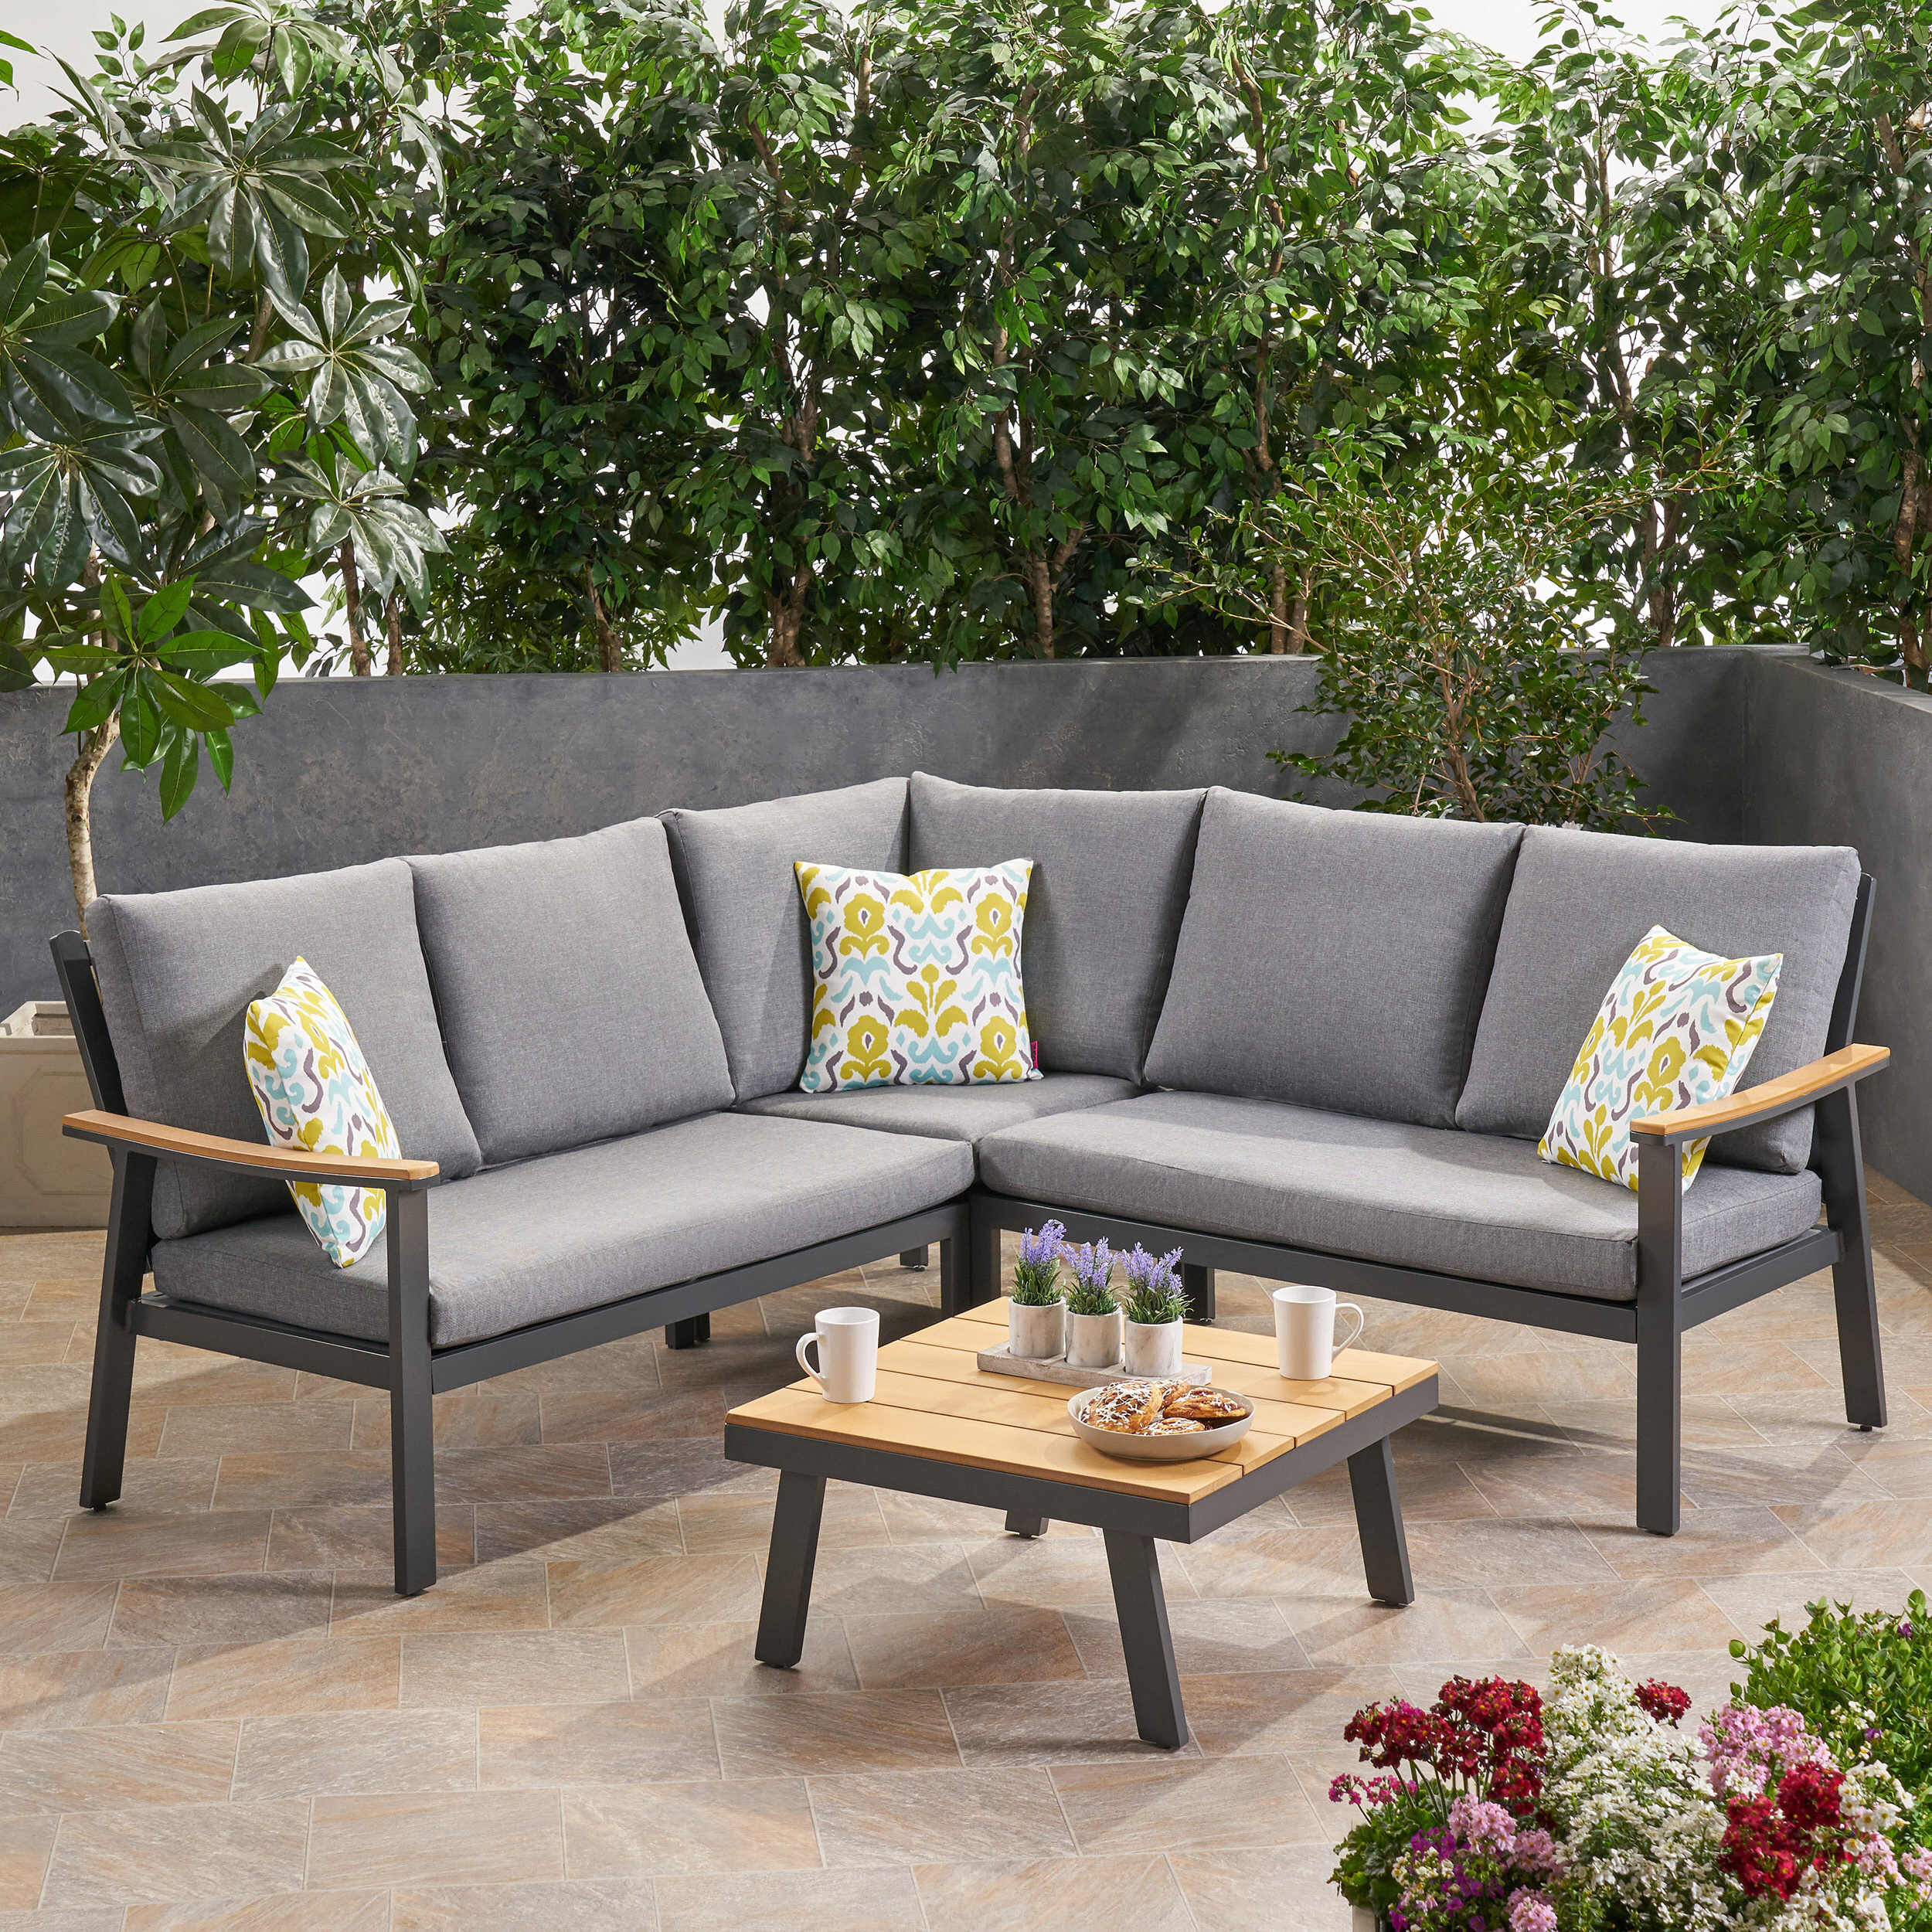 Most Recent Olinda 3 Piece Sectionals Seating Group With Cushions Pertaining To Ivy Bronx Arocho Outdoor 4 Piece Sectional Seating Group (View 12 of 25)